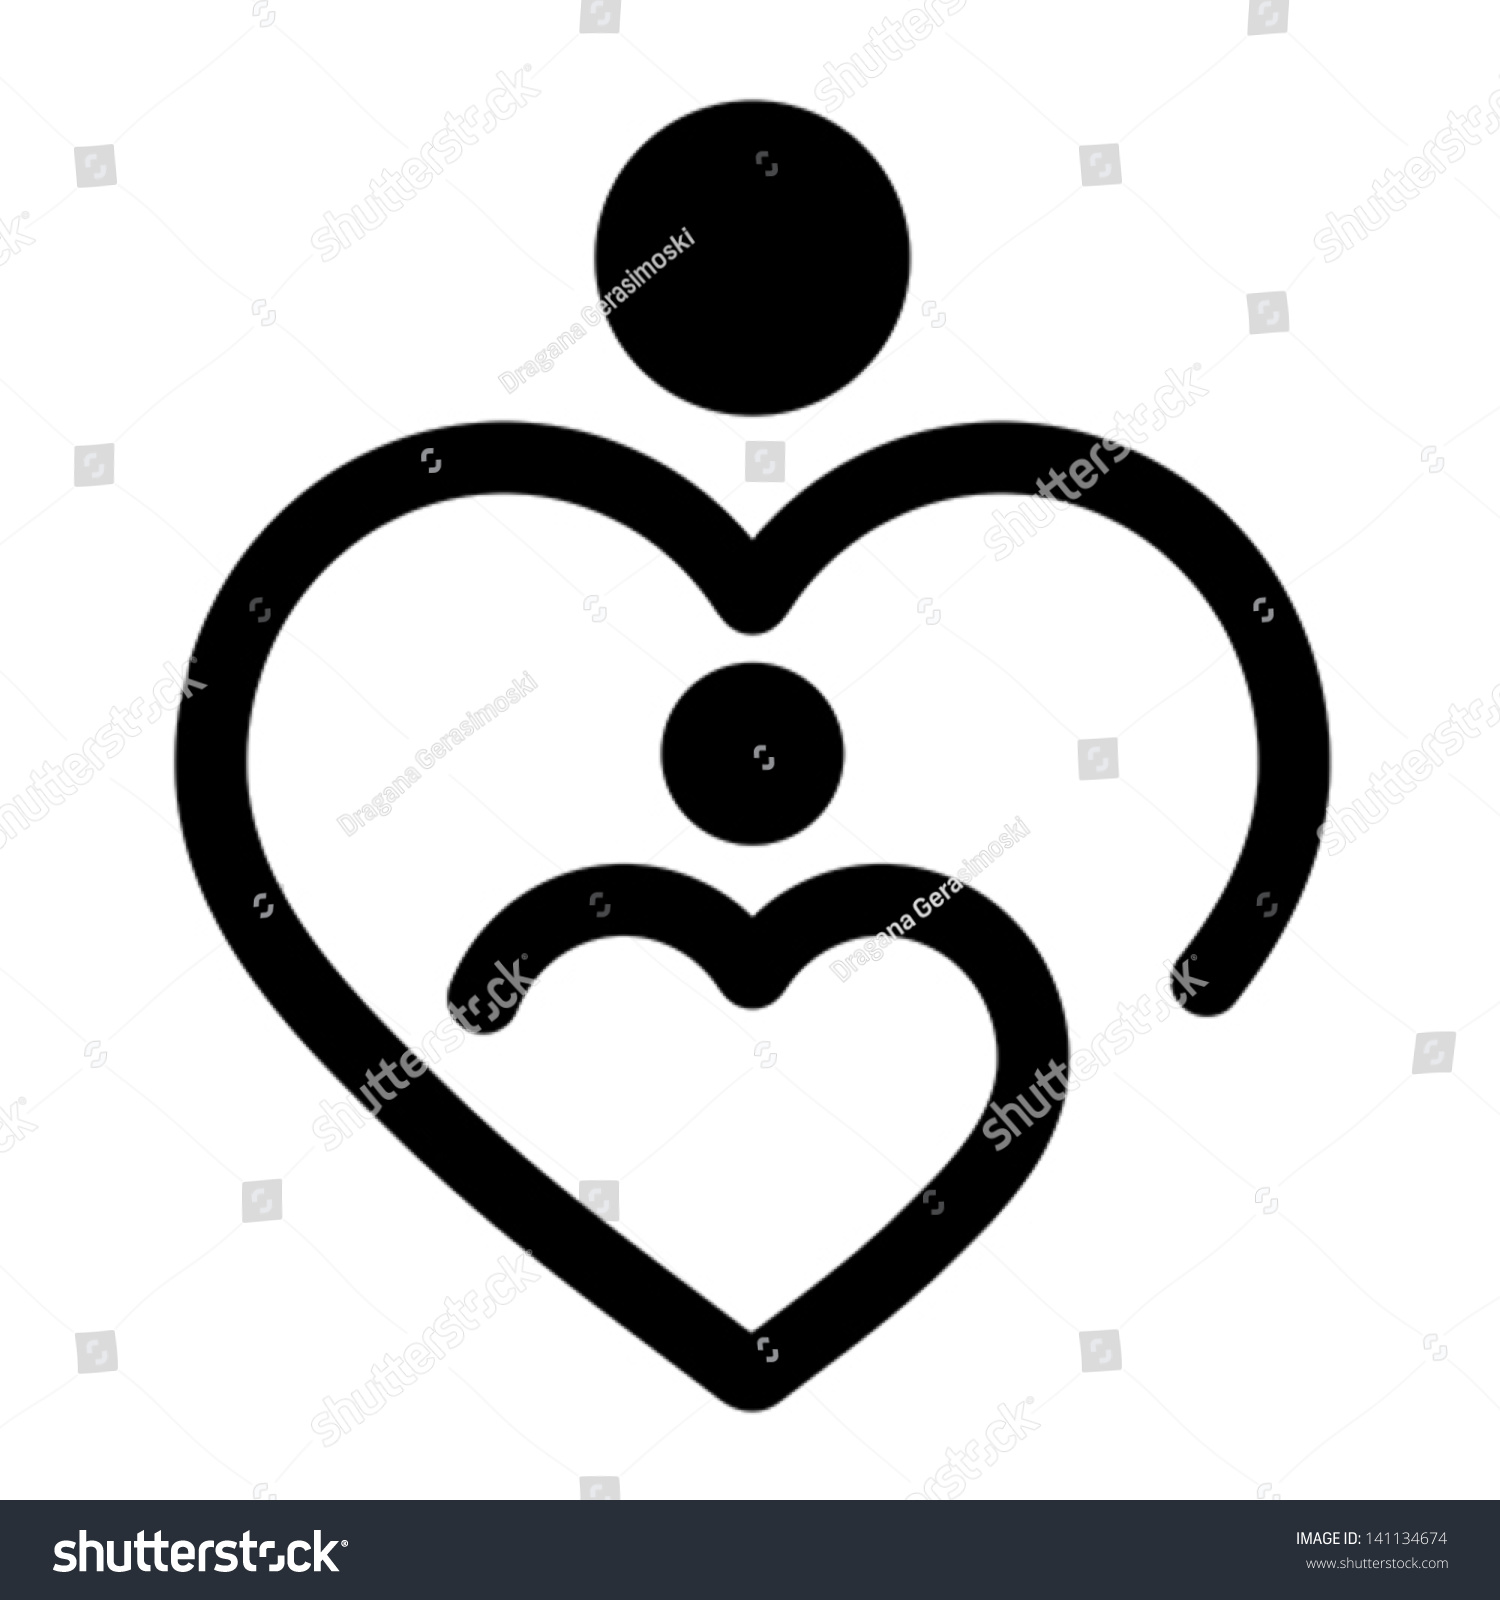 Nursery little child mother concept heart stock vector 141134674 nursery little child and mother concept heart shape medical symbol vector isolated on white buycottarizona Images